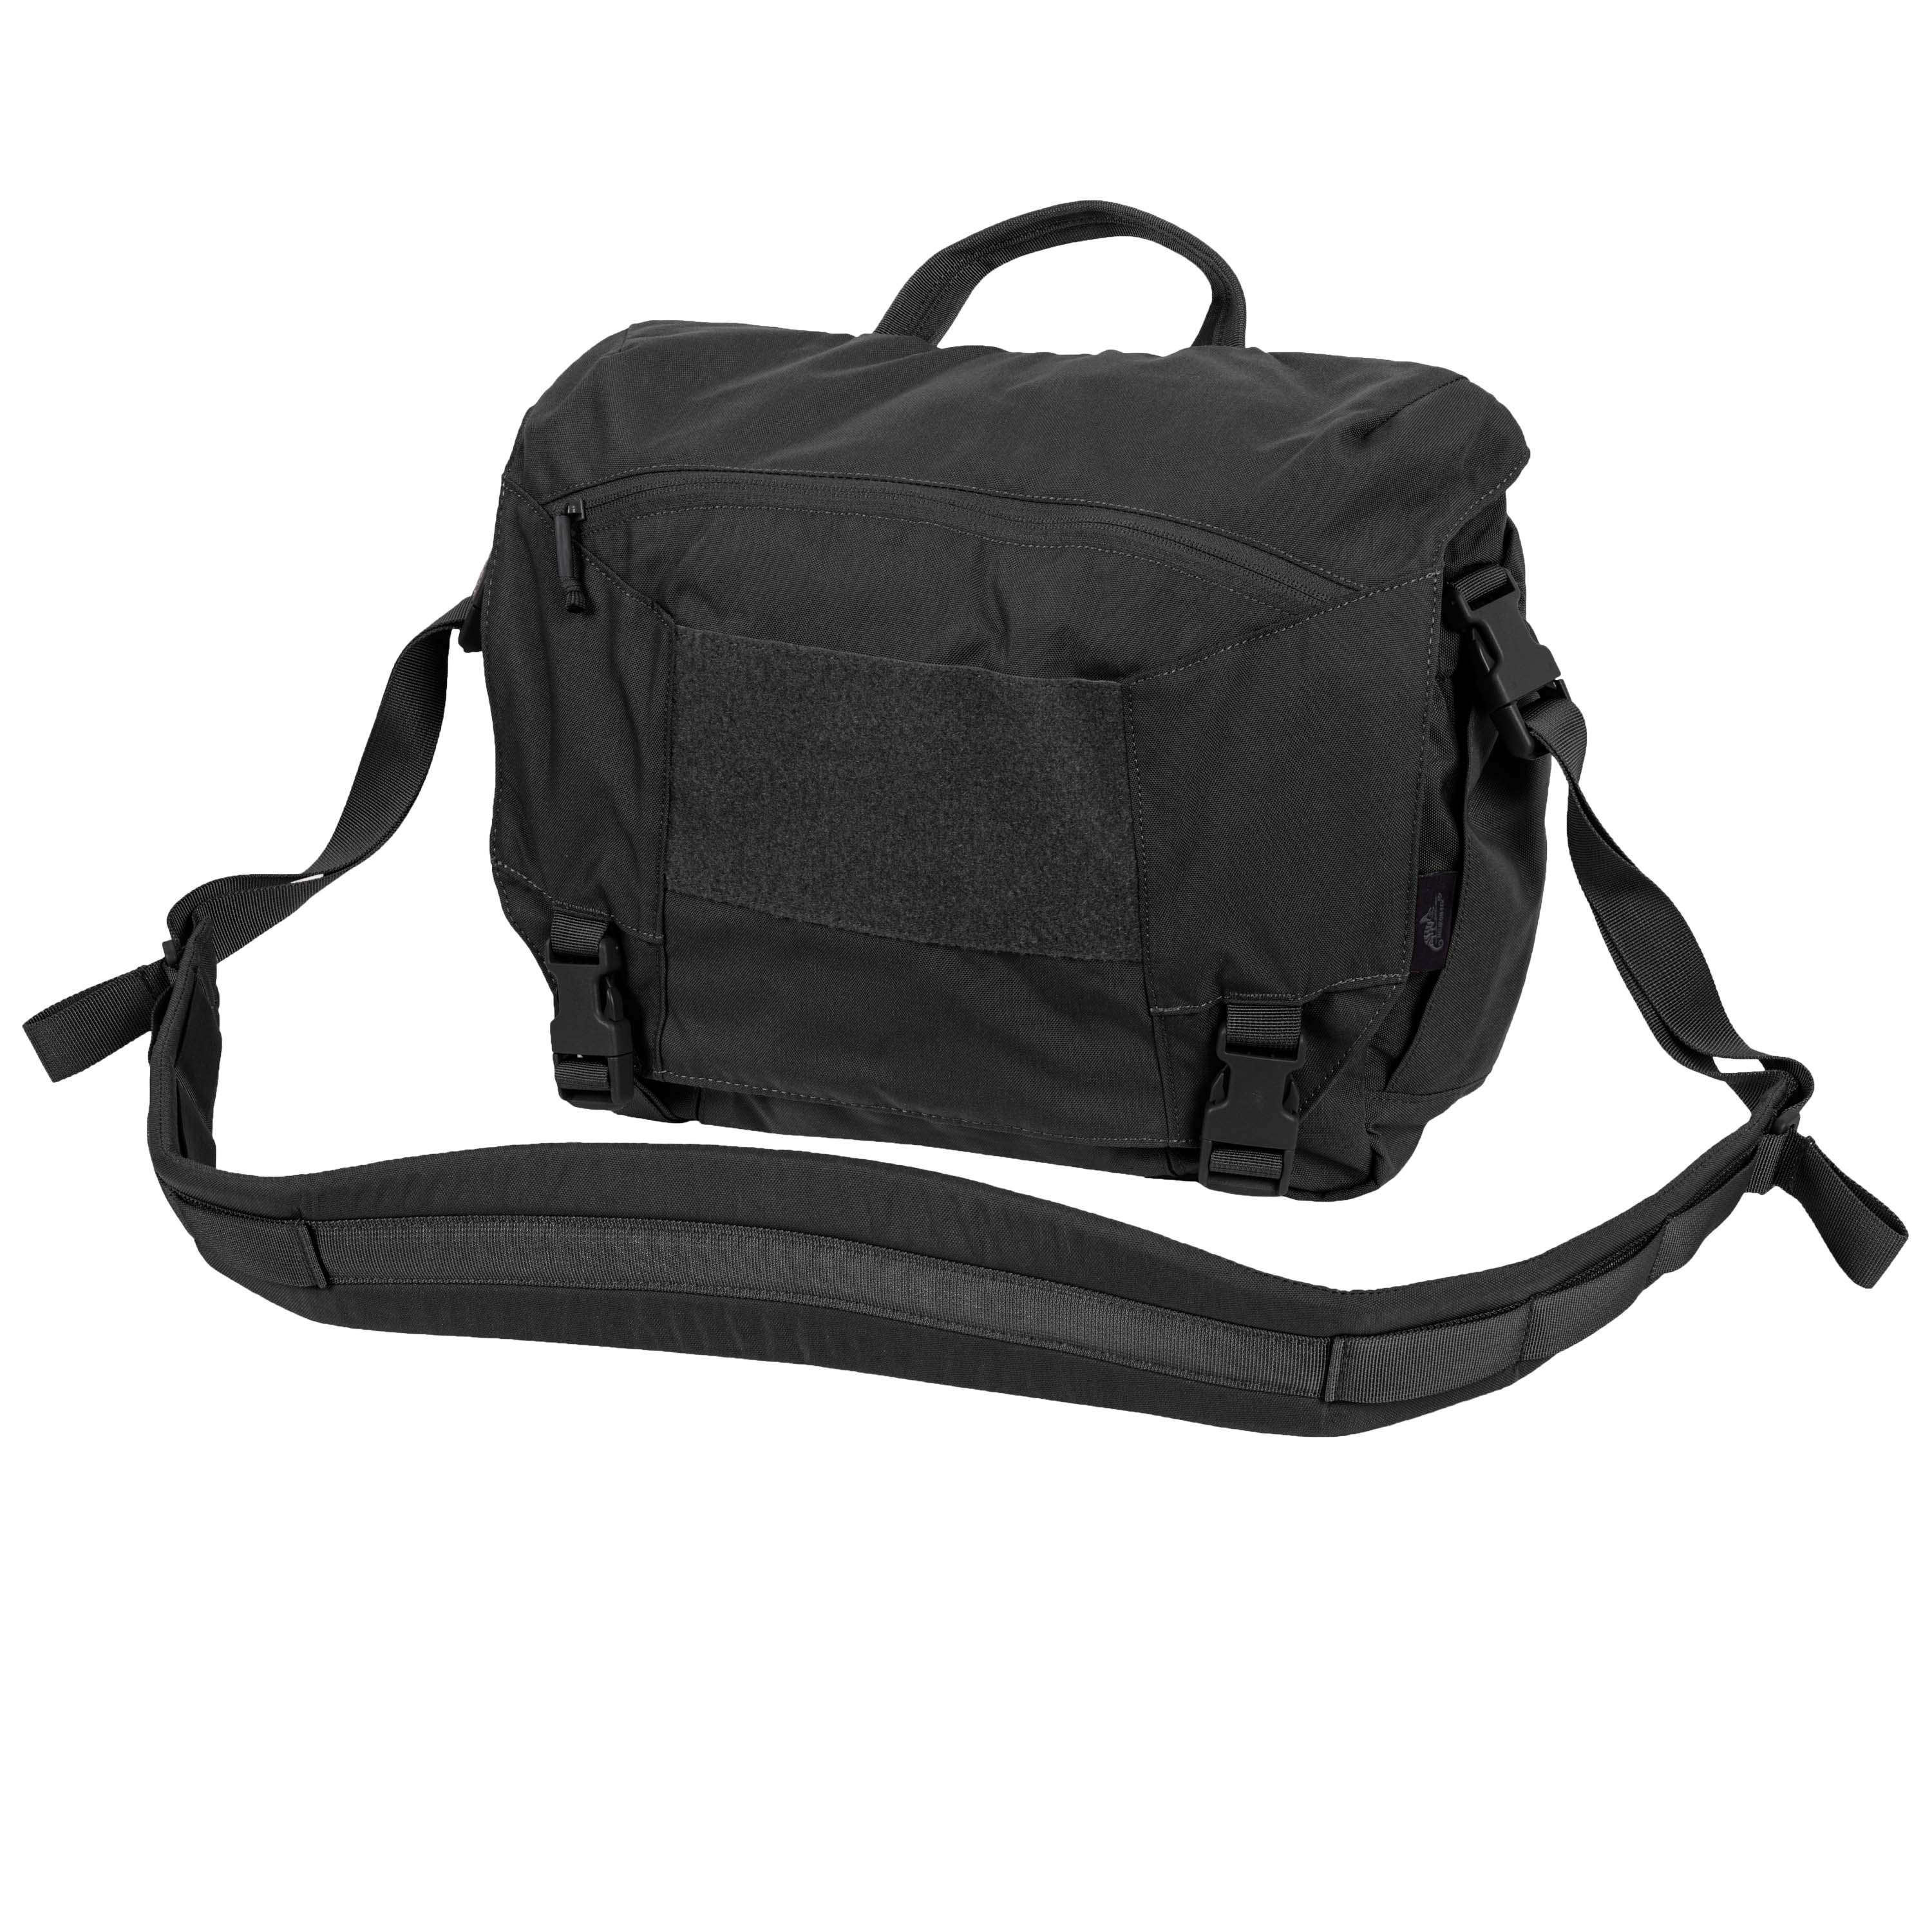 Helikon-Tex Umhängetasche Urban Courier Bag medium schwarz